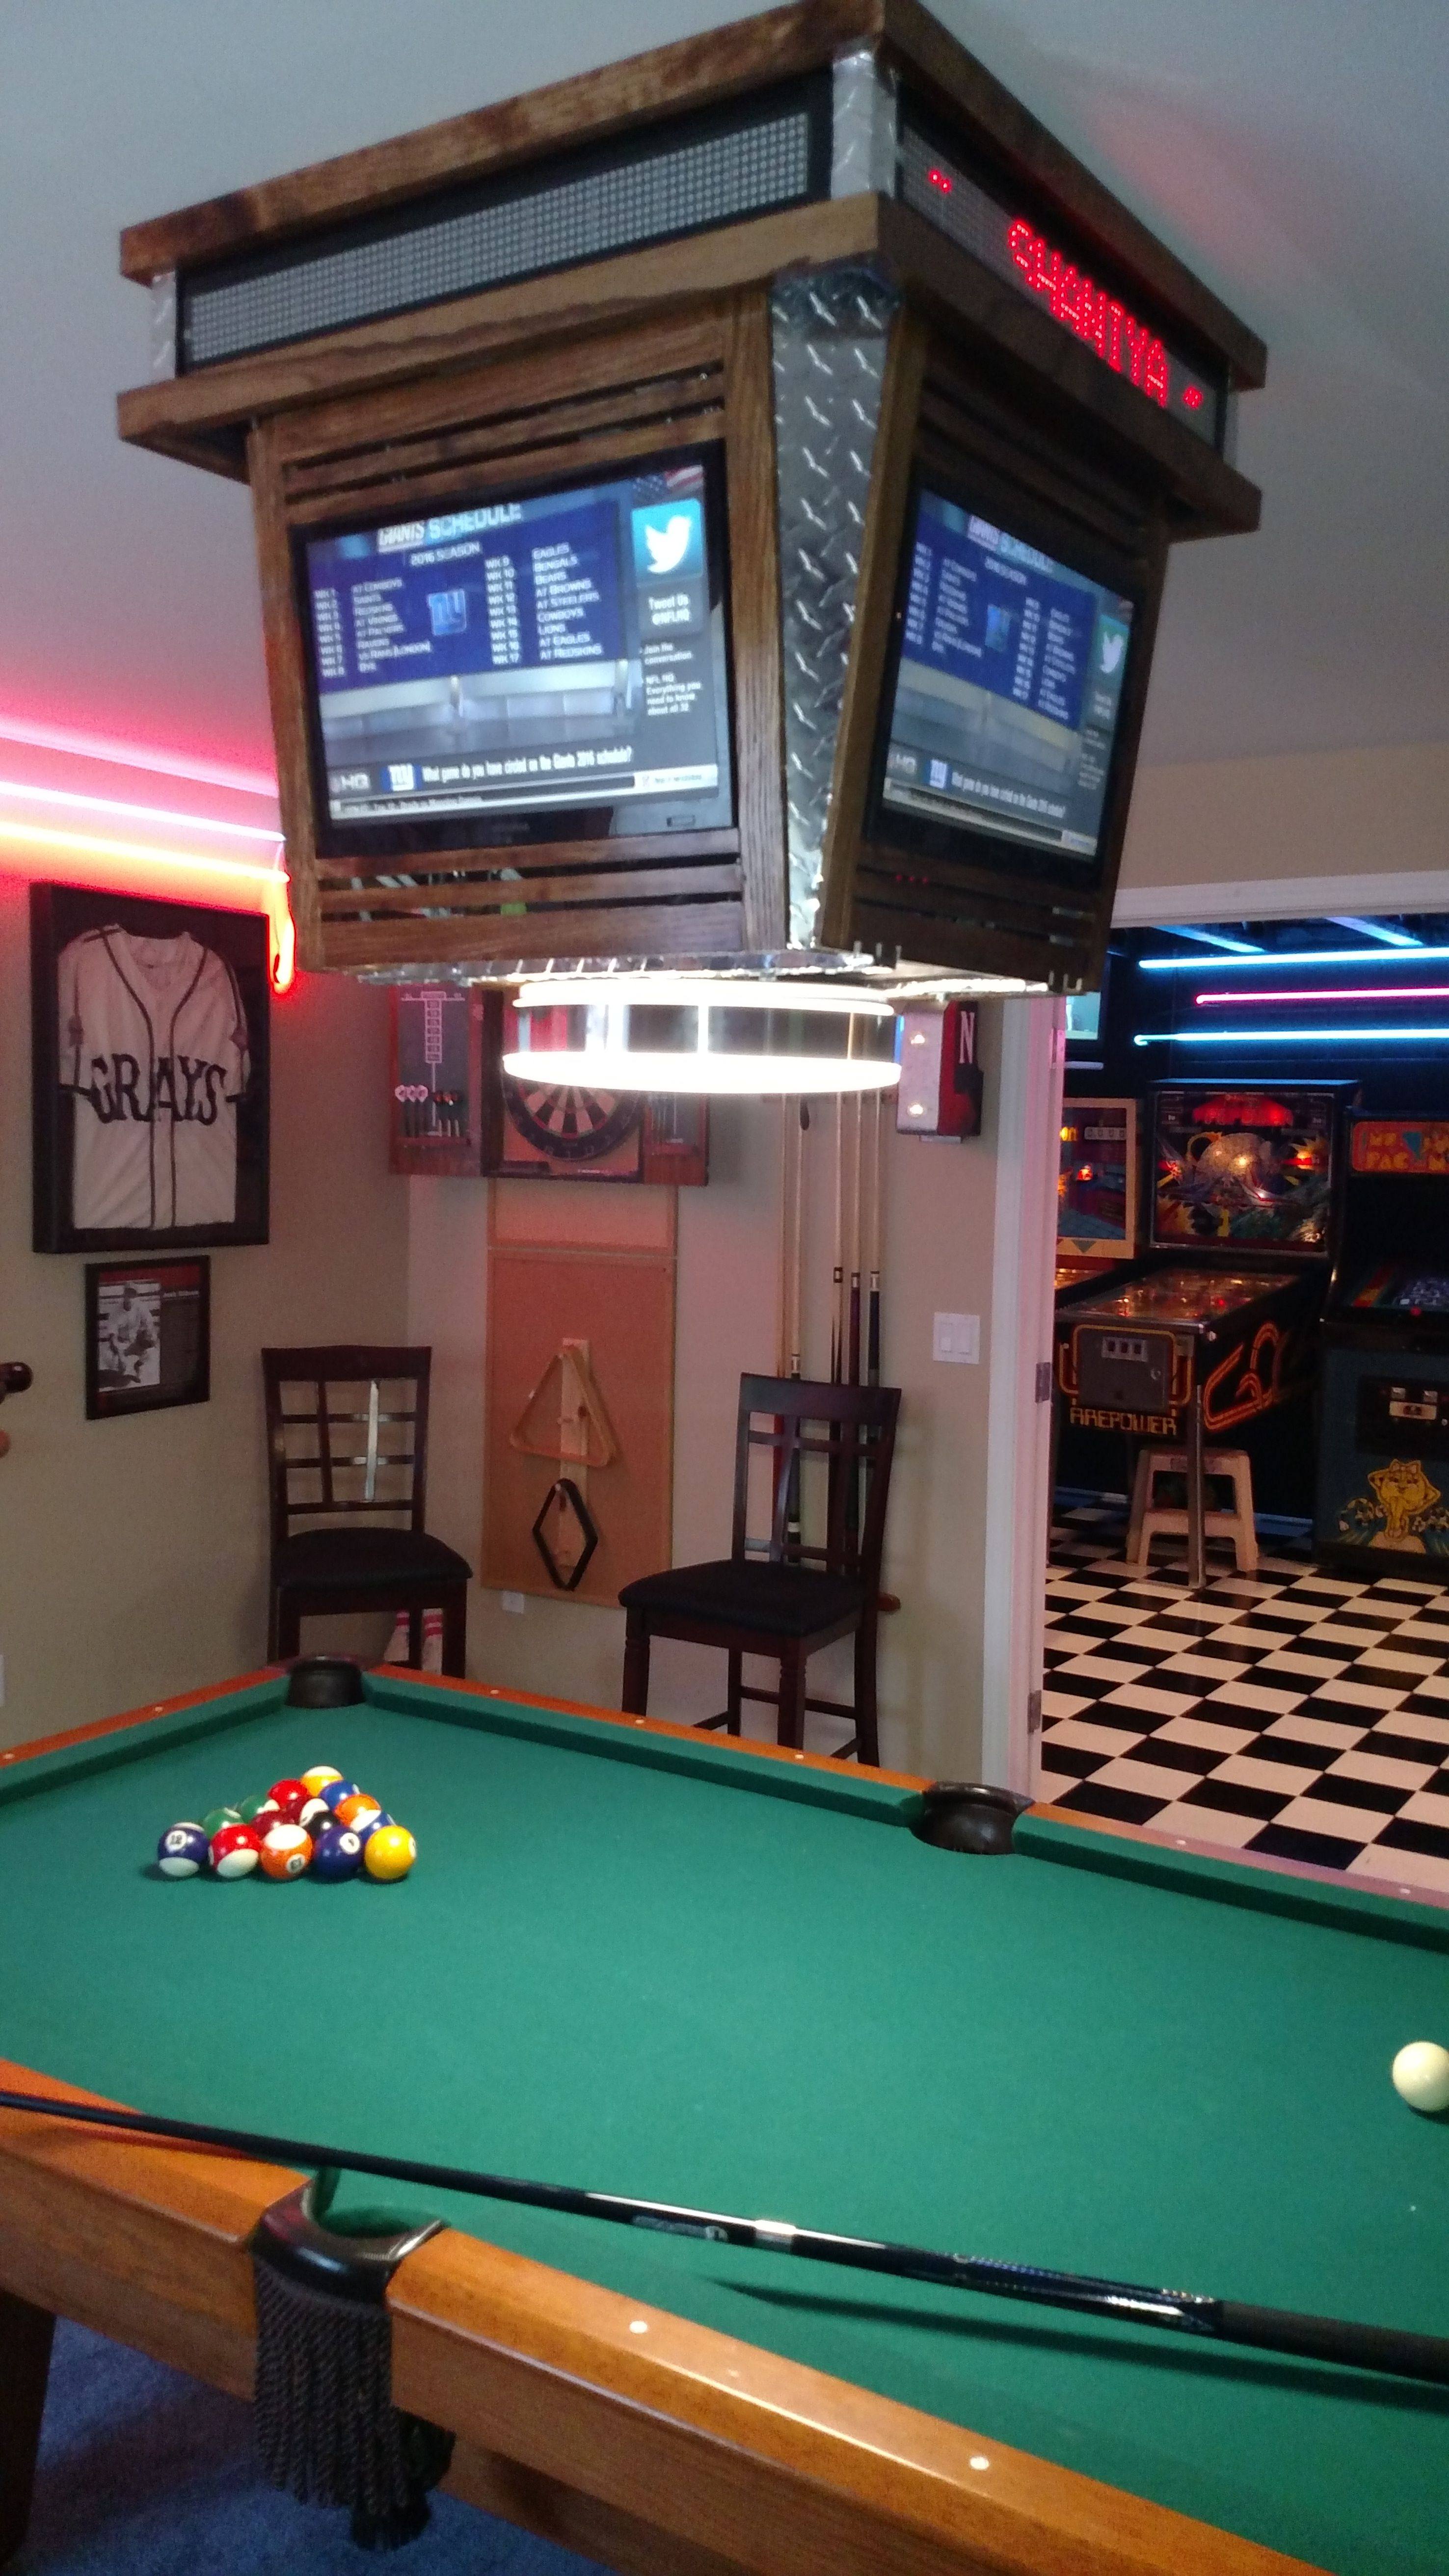 Neon Table Light: Pool Table Score Board Light With Ultimate Neon Lit